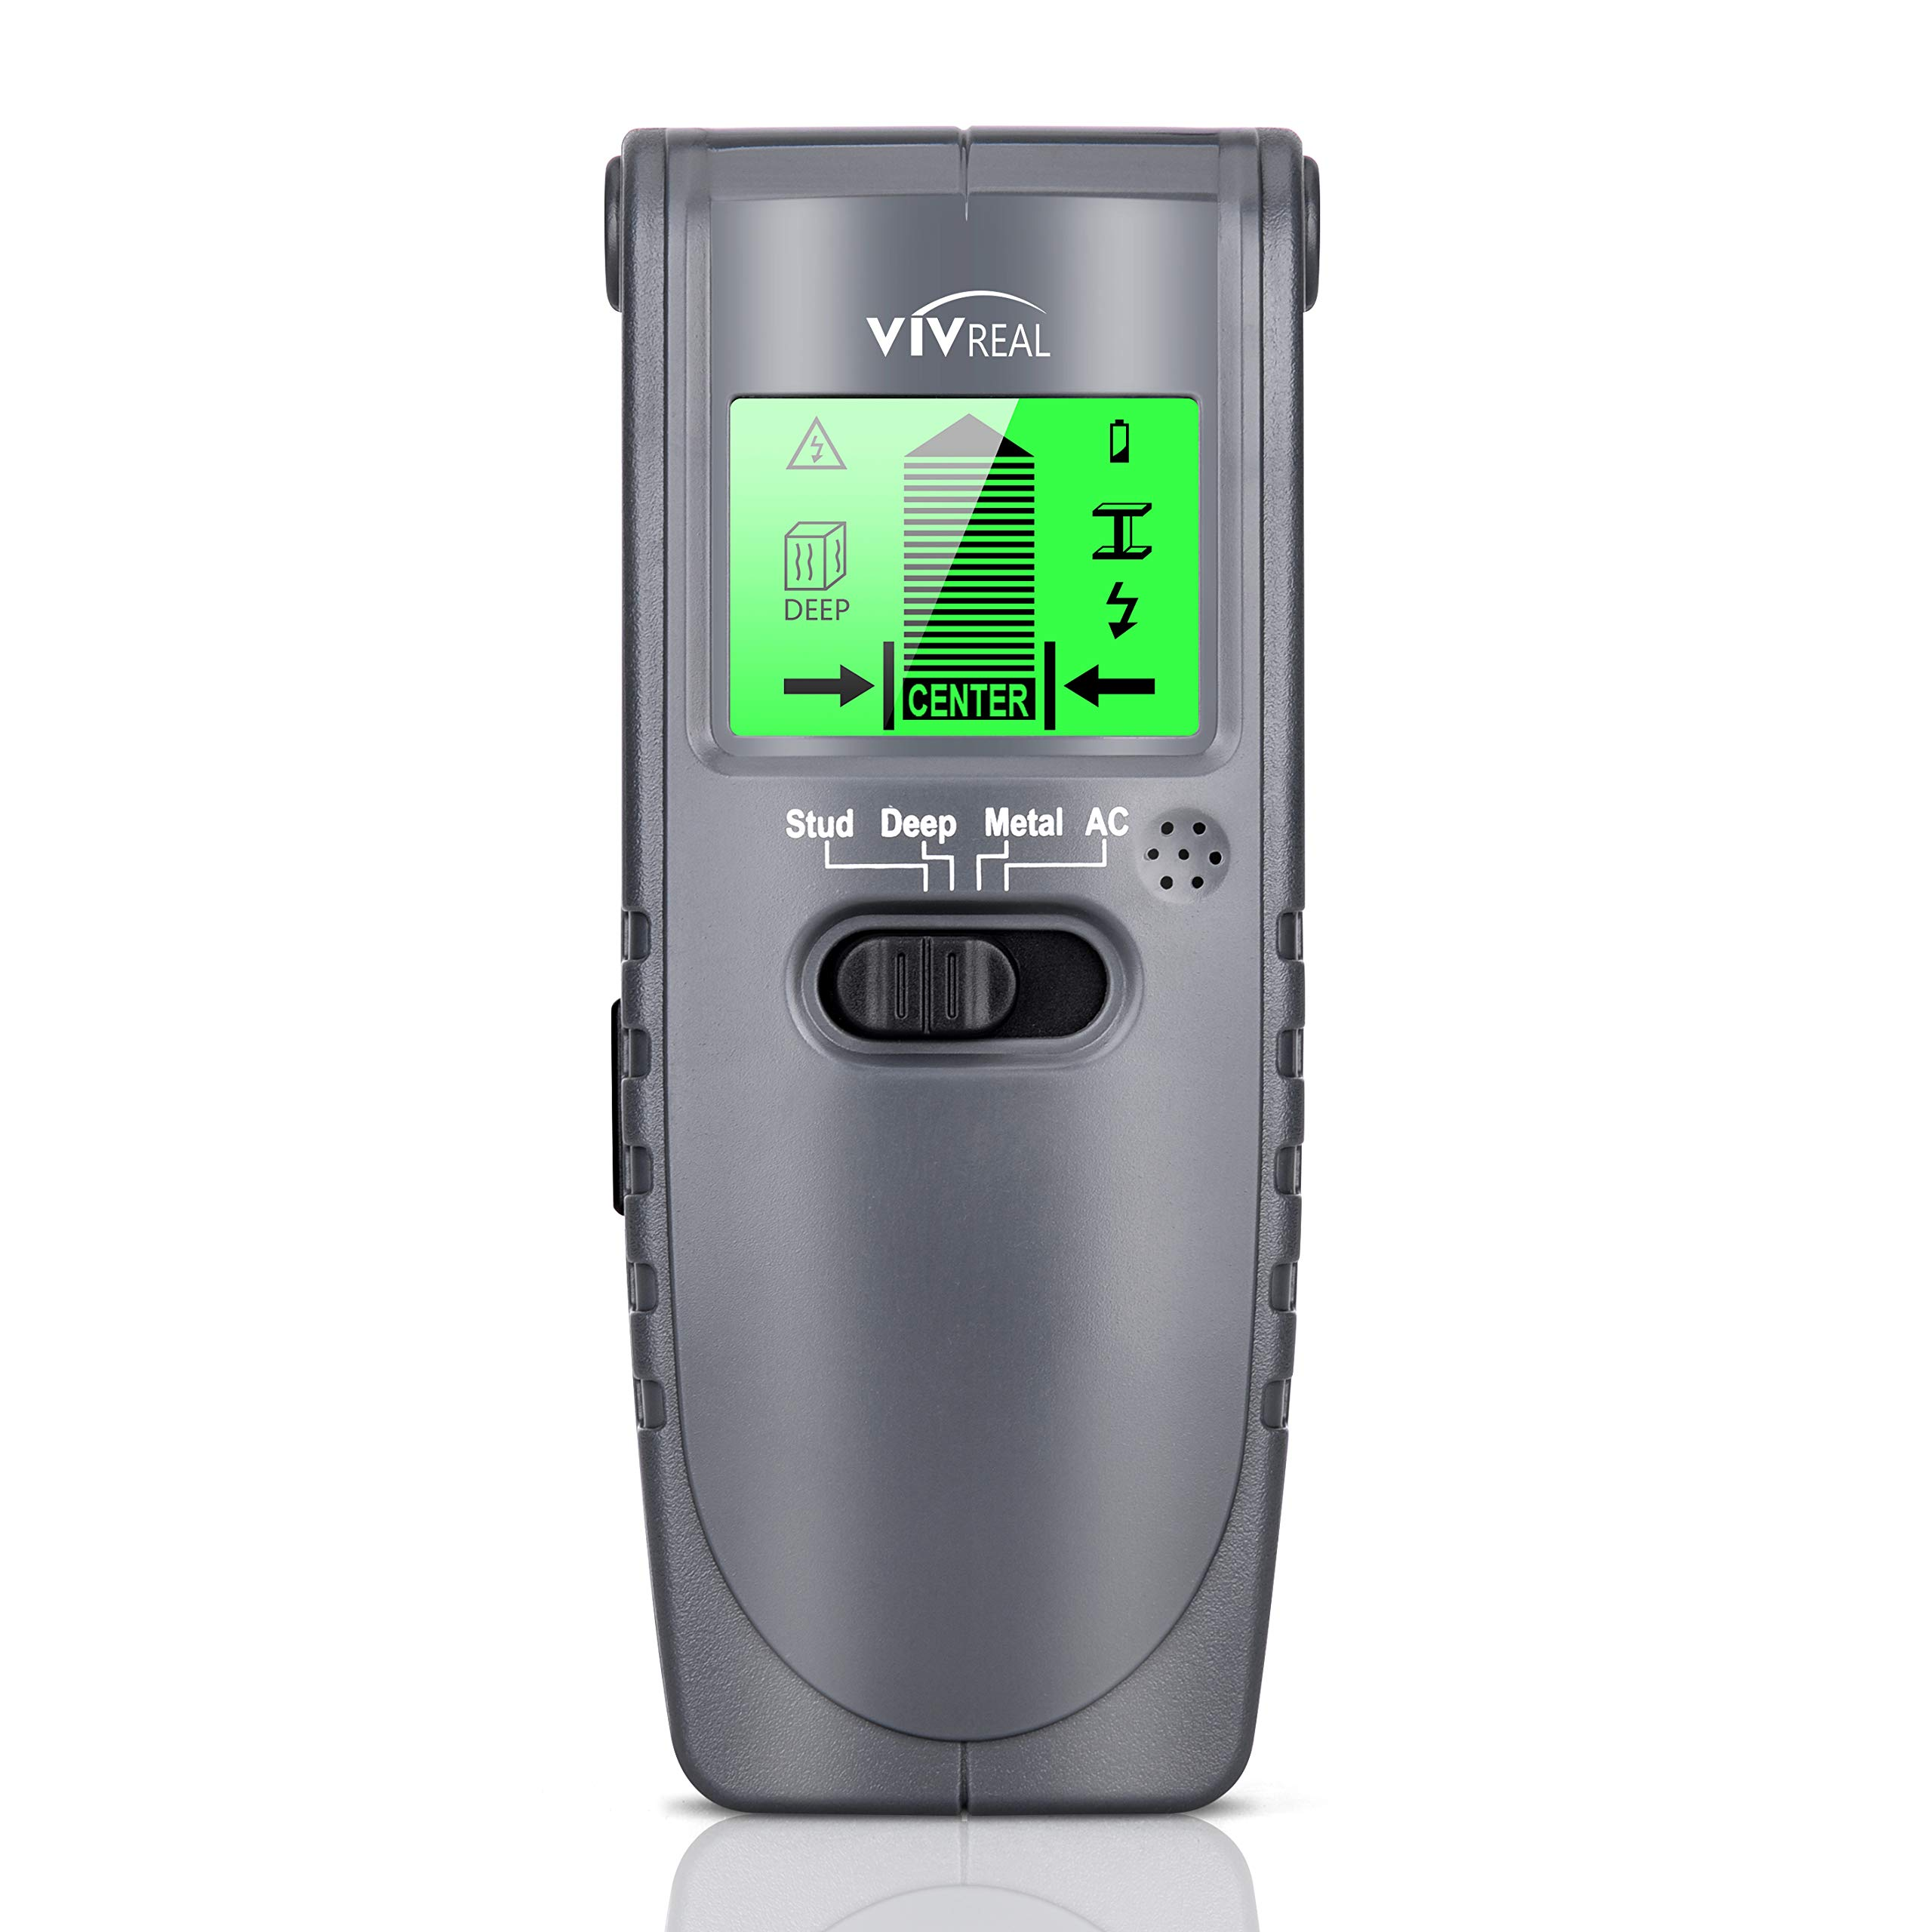 Stud Finder Sensor - 3 in 1 Wall Scanner Stud Detector Electronic Multi-function Wall Sensor with Large LCD Display Sound Alert for Studs Wood Metal live AC wiring Detection